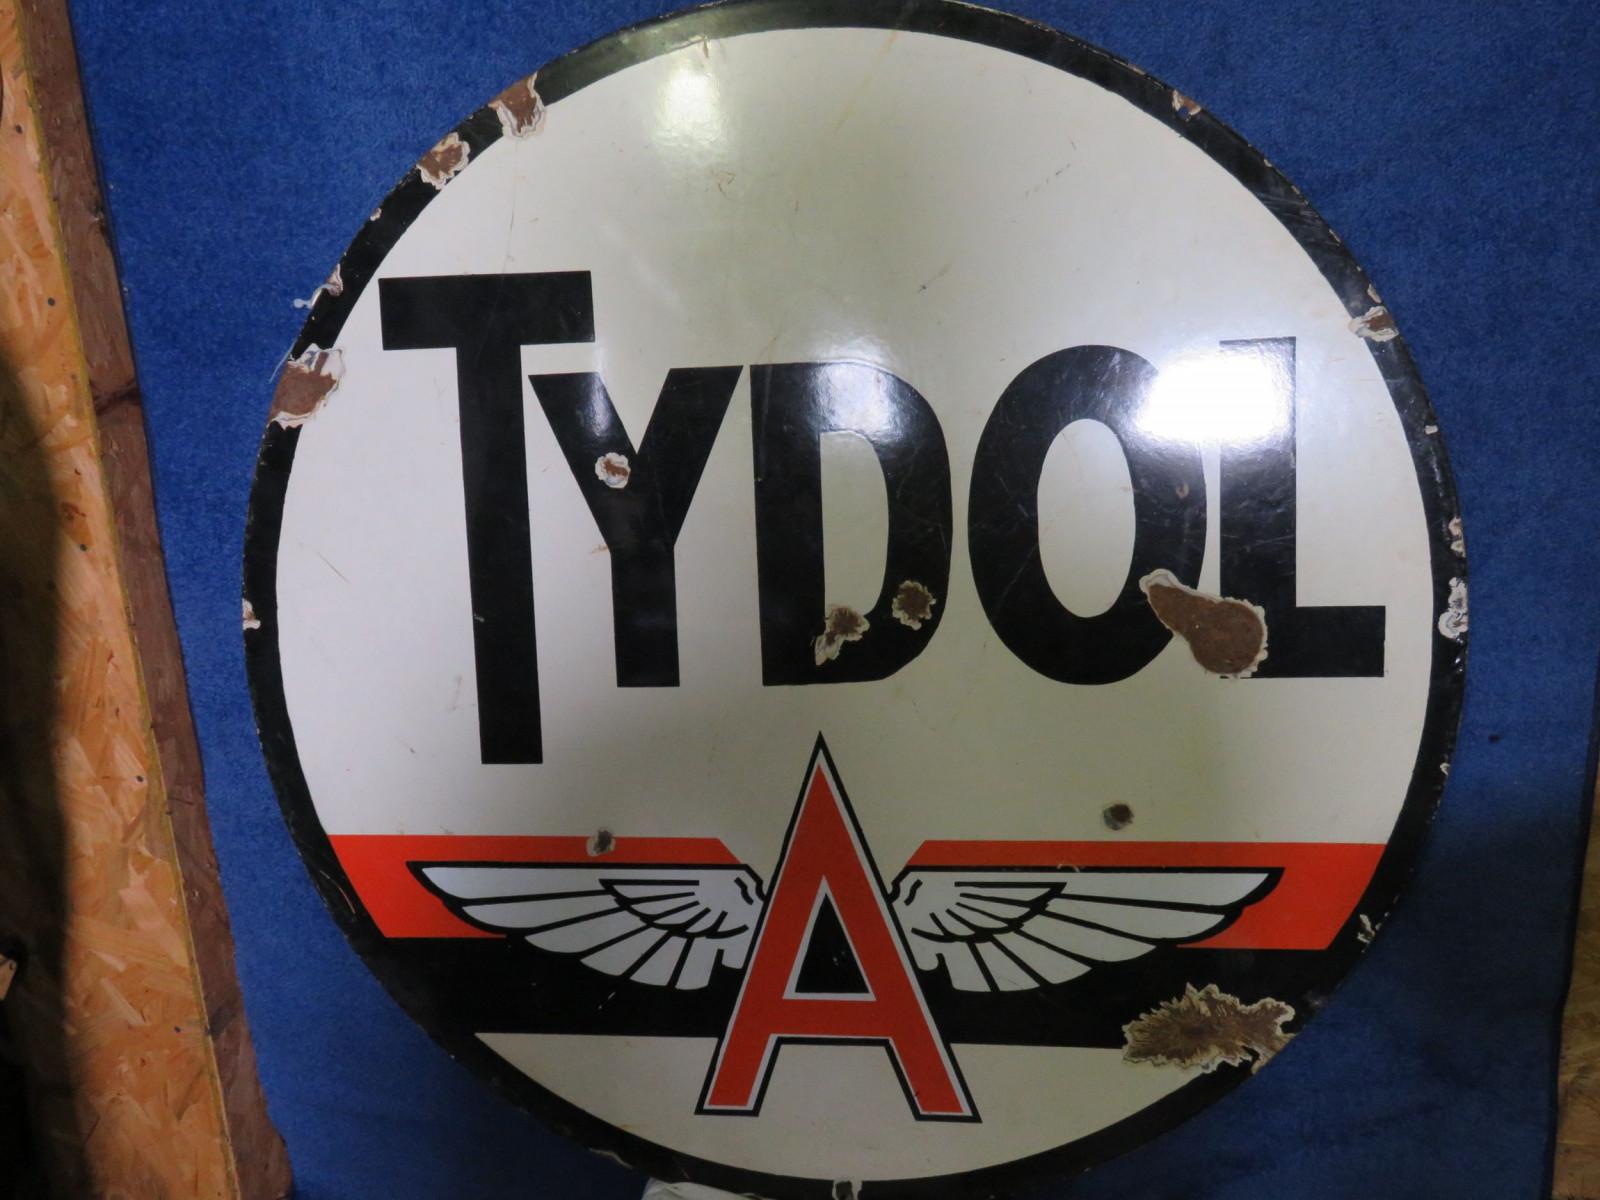 Tydol Flying A DS Porcelain Sign - Image 1